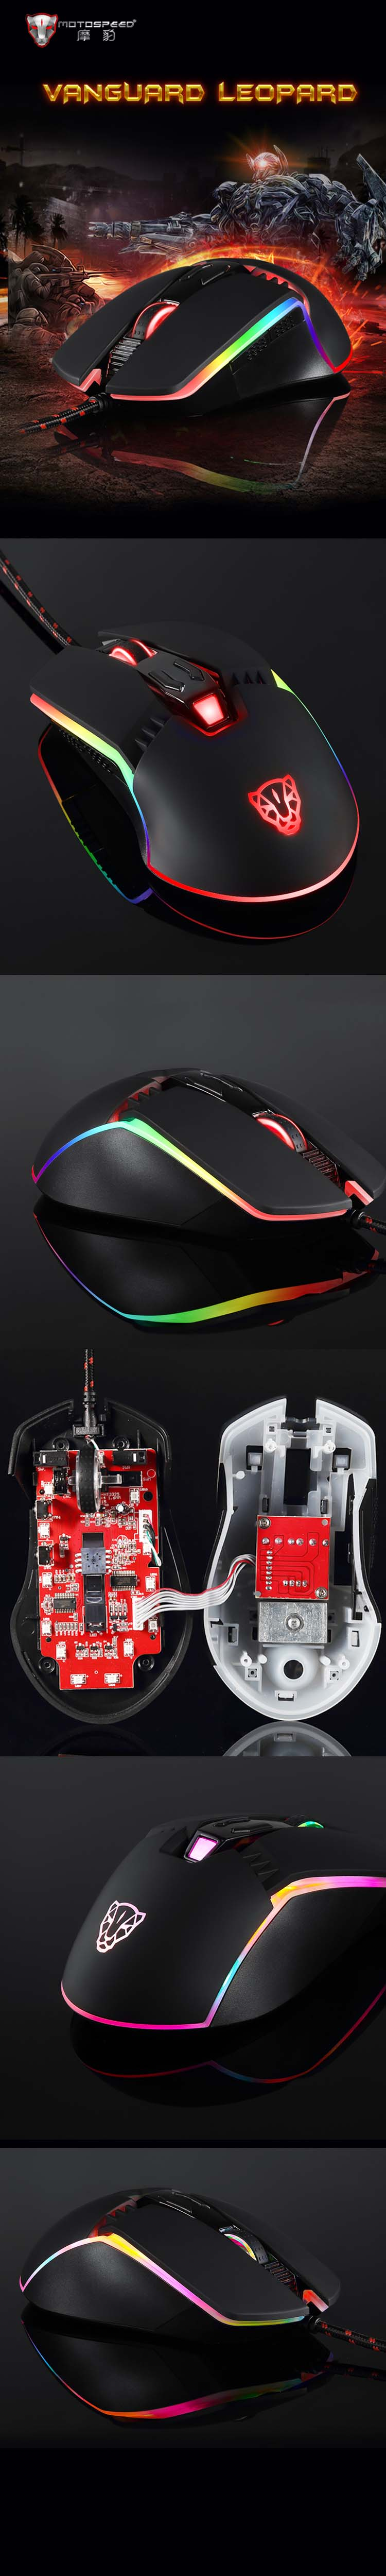 V20 RGB Backlight Gaming Mouse